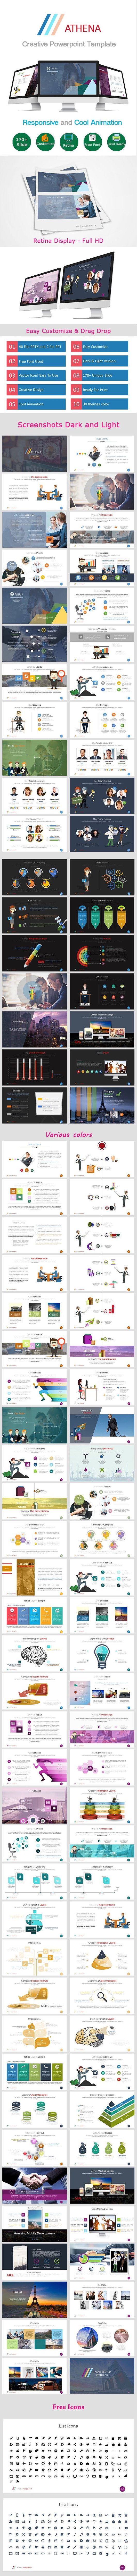 Ziemlich Ms Powerpoint 2007 Vorlagen Galerie - Entry Level Resume ...